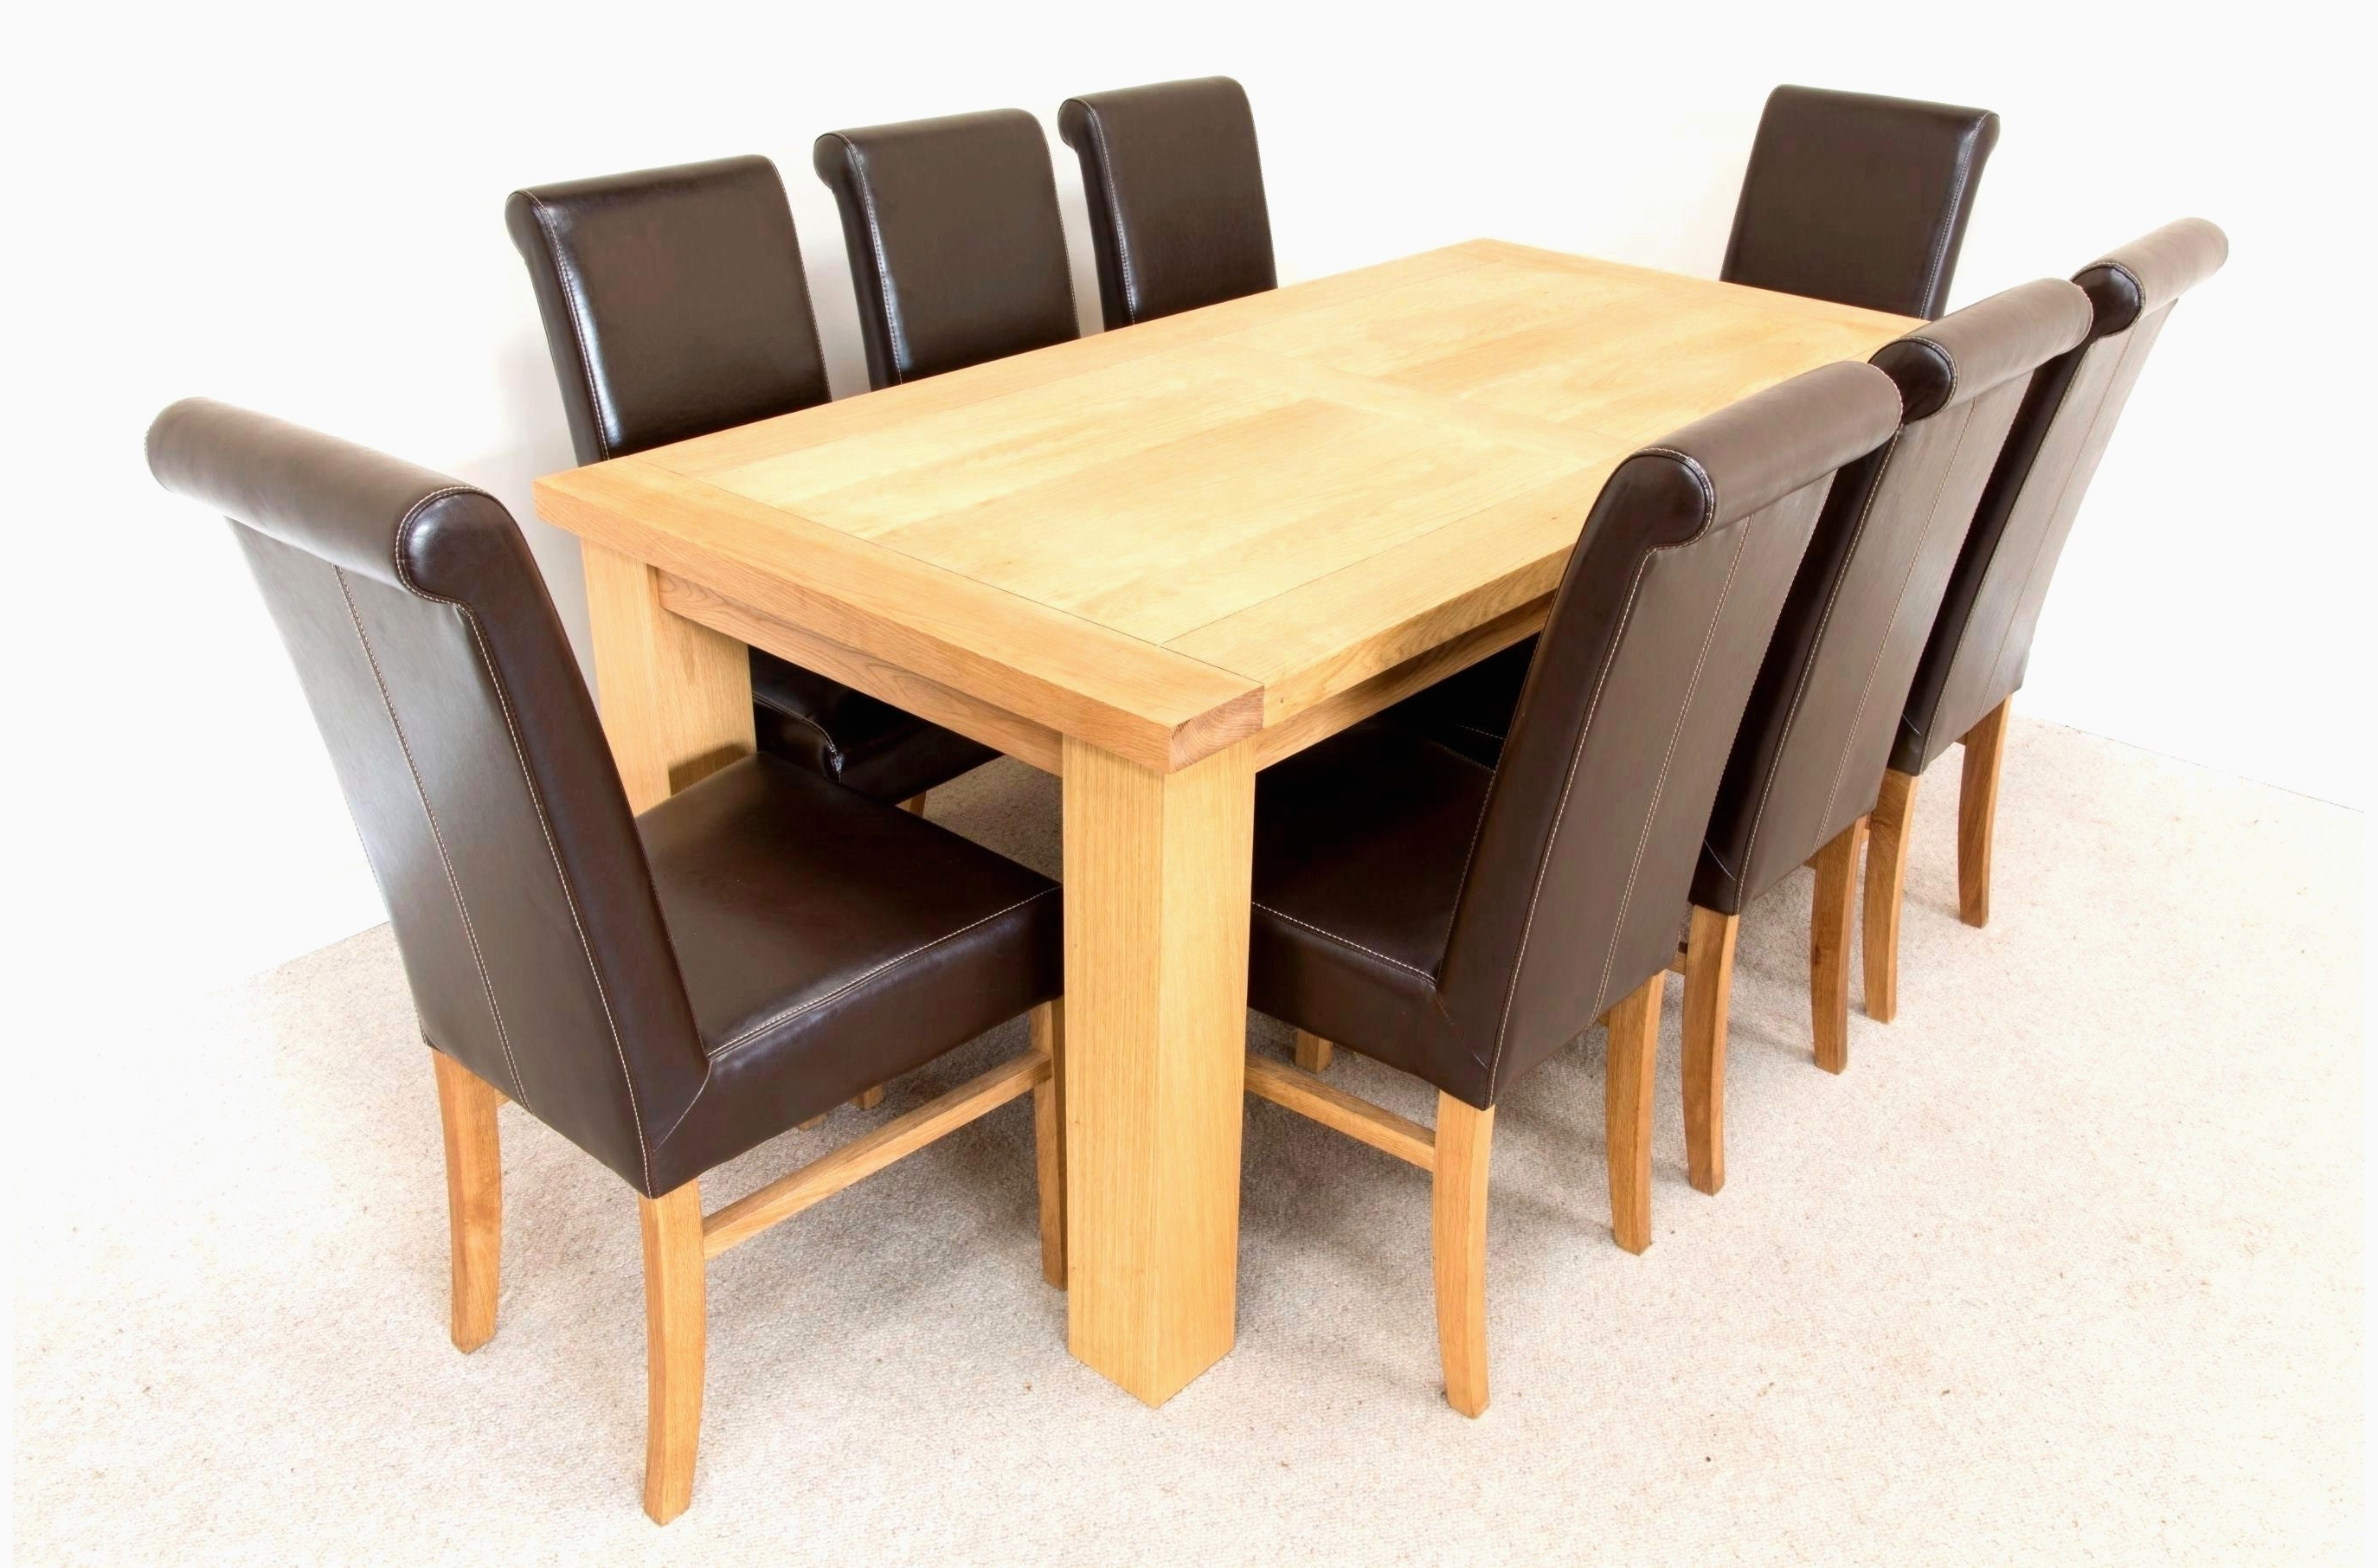 Solid Oak Dining Room Table And 8 Chairs Fresh 28 Classy Raw Wood With Regard To Most Up To Date Solid Oak Dining Tables And 8 Chairs (View 13 of 25)